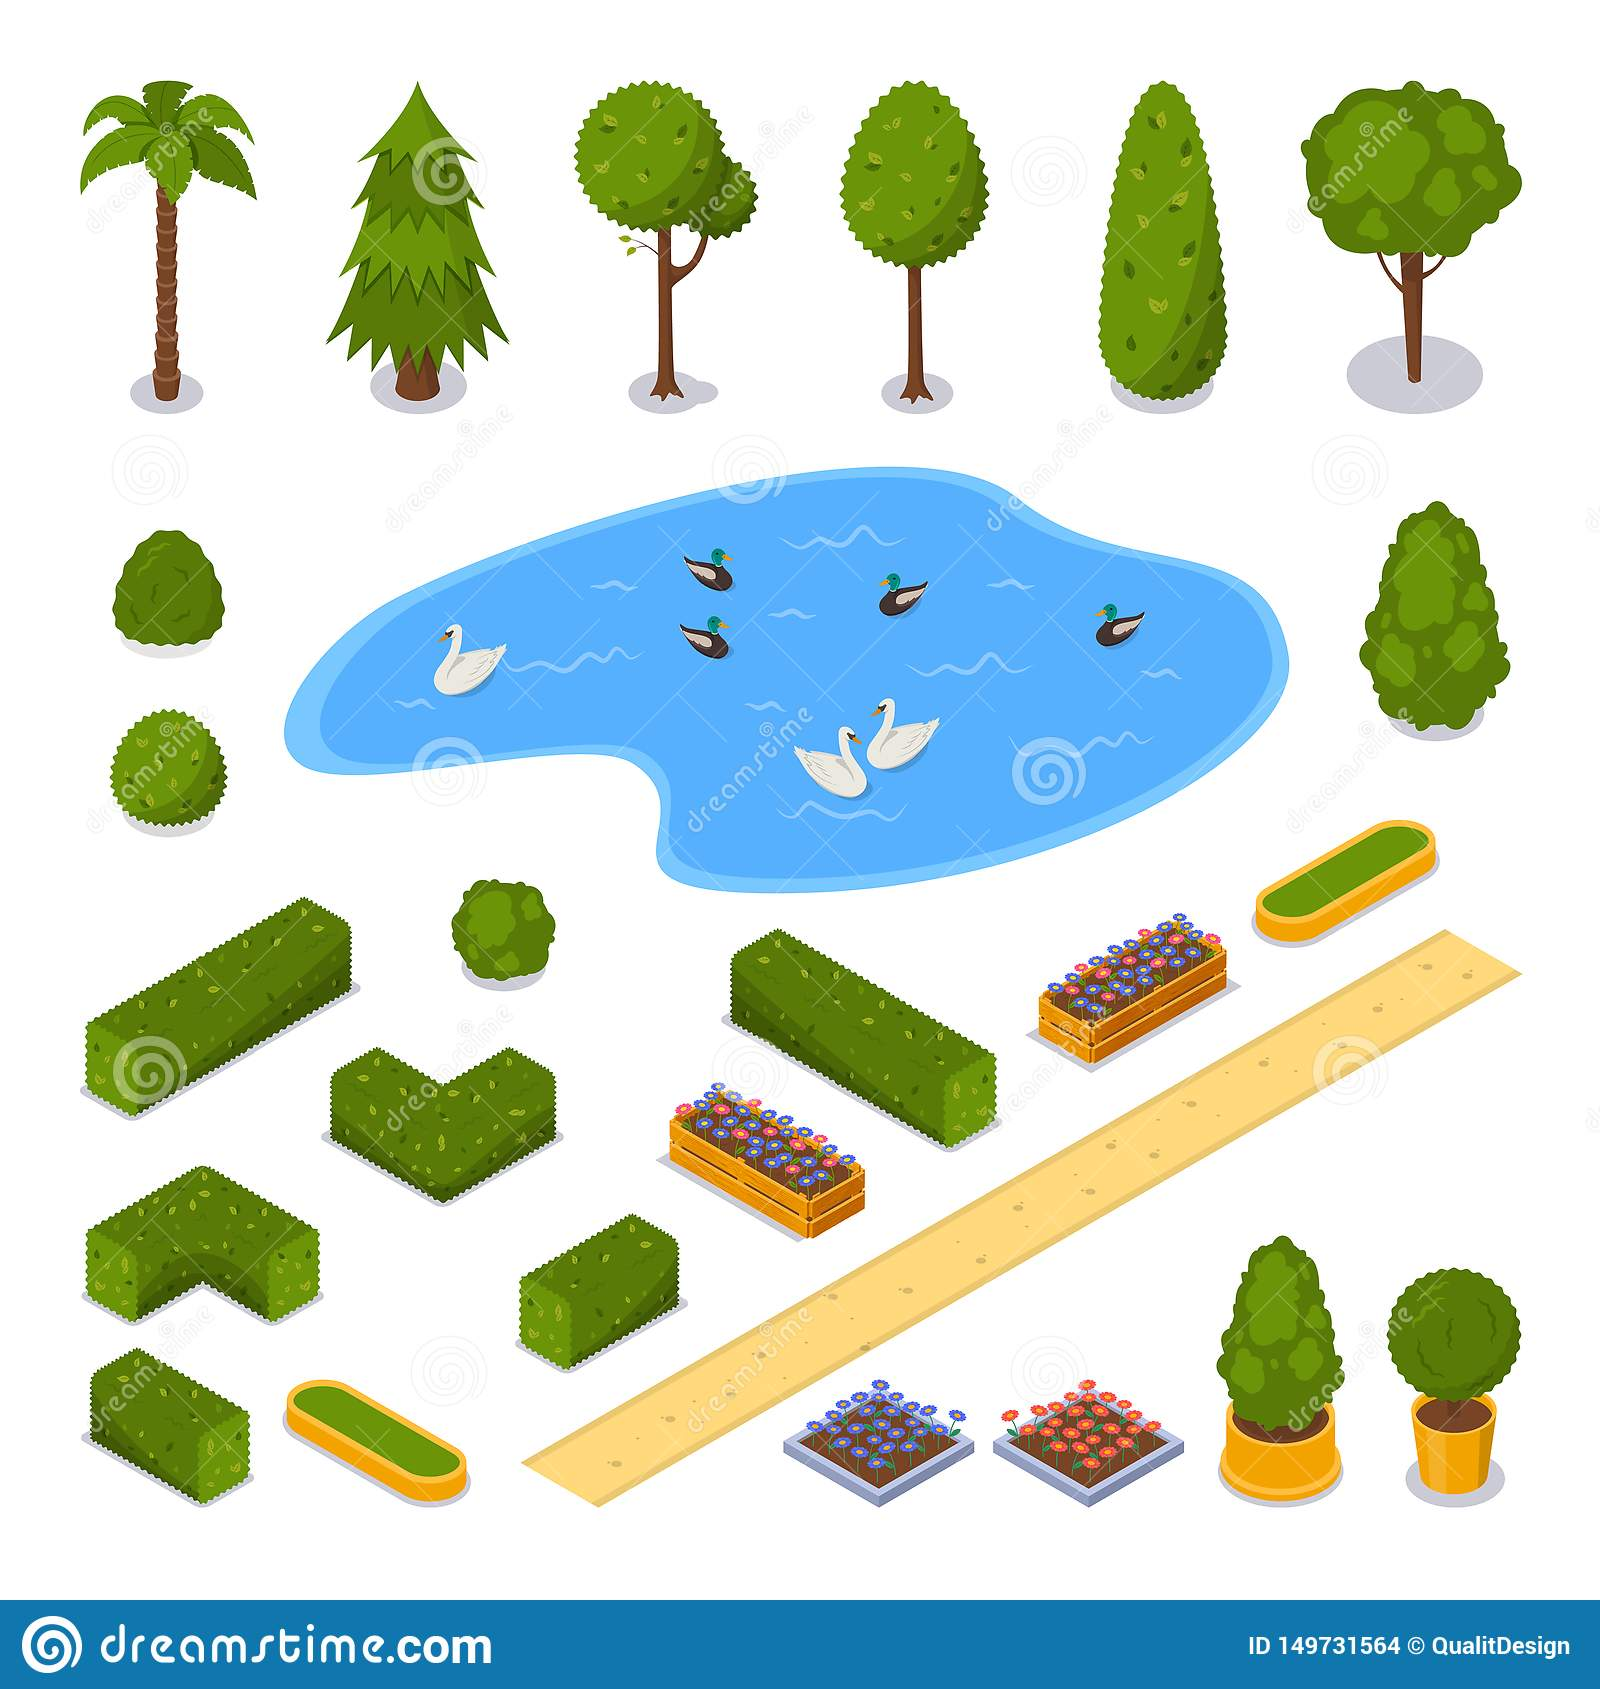 City Park 3d Isometric Icons Vector Landscape Design Elements Green Garden Trees Pond And Flower Pots Isolated Stock Vector Illustration Of Central City 149731564